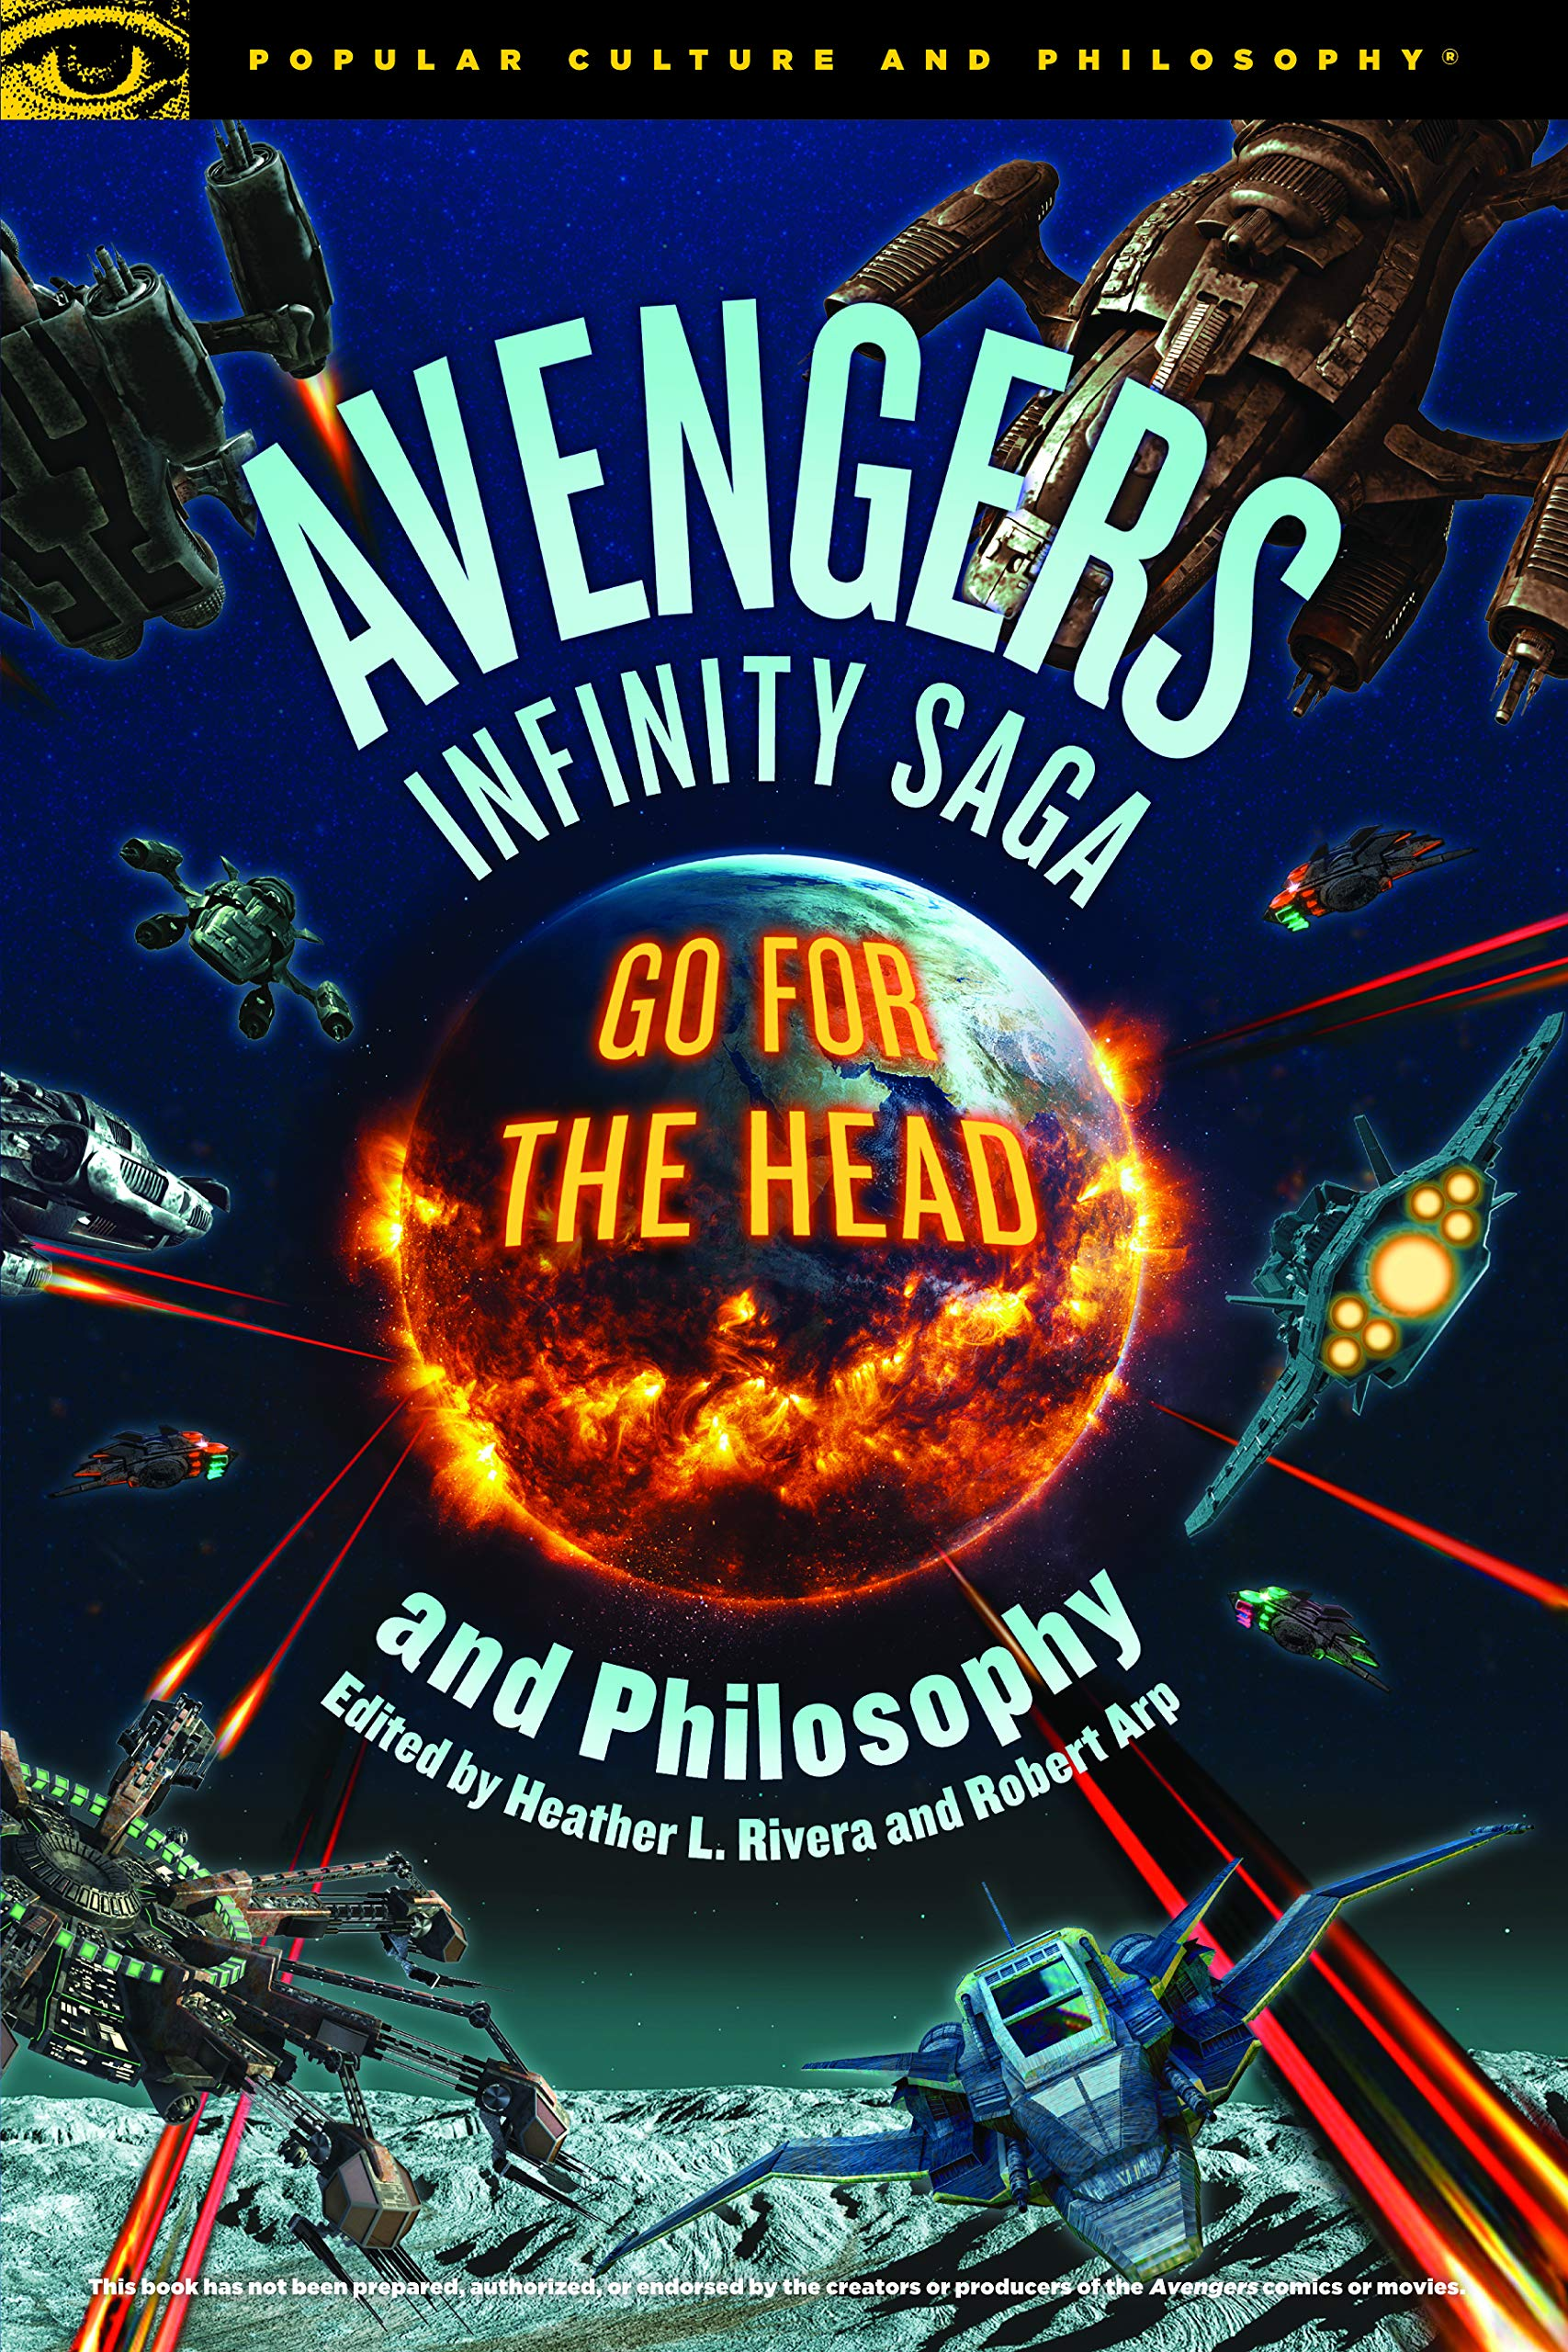 Avengers Infinity Saga and Philosophy (Popular Culture and Philosophy Book 131)